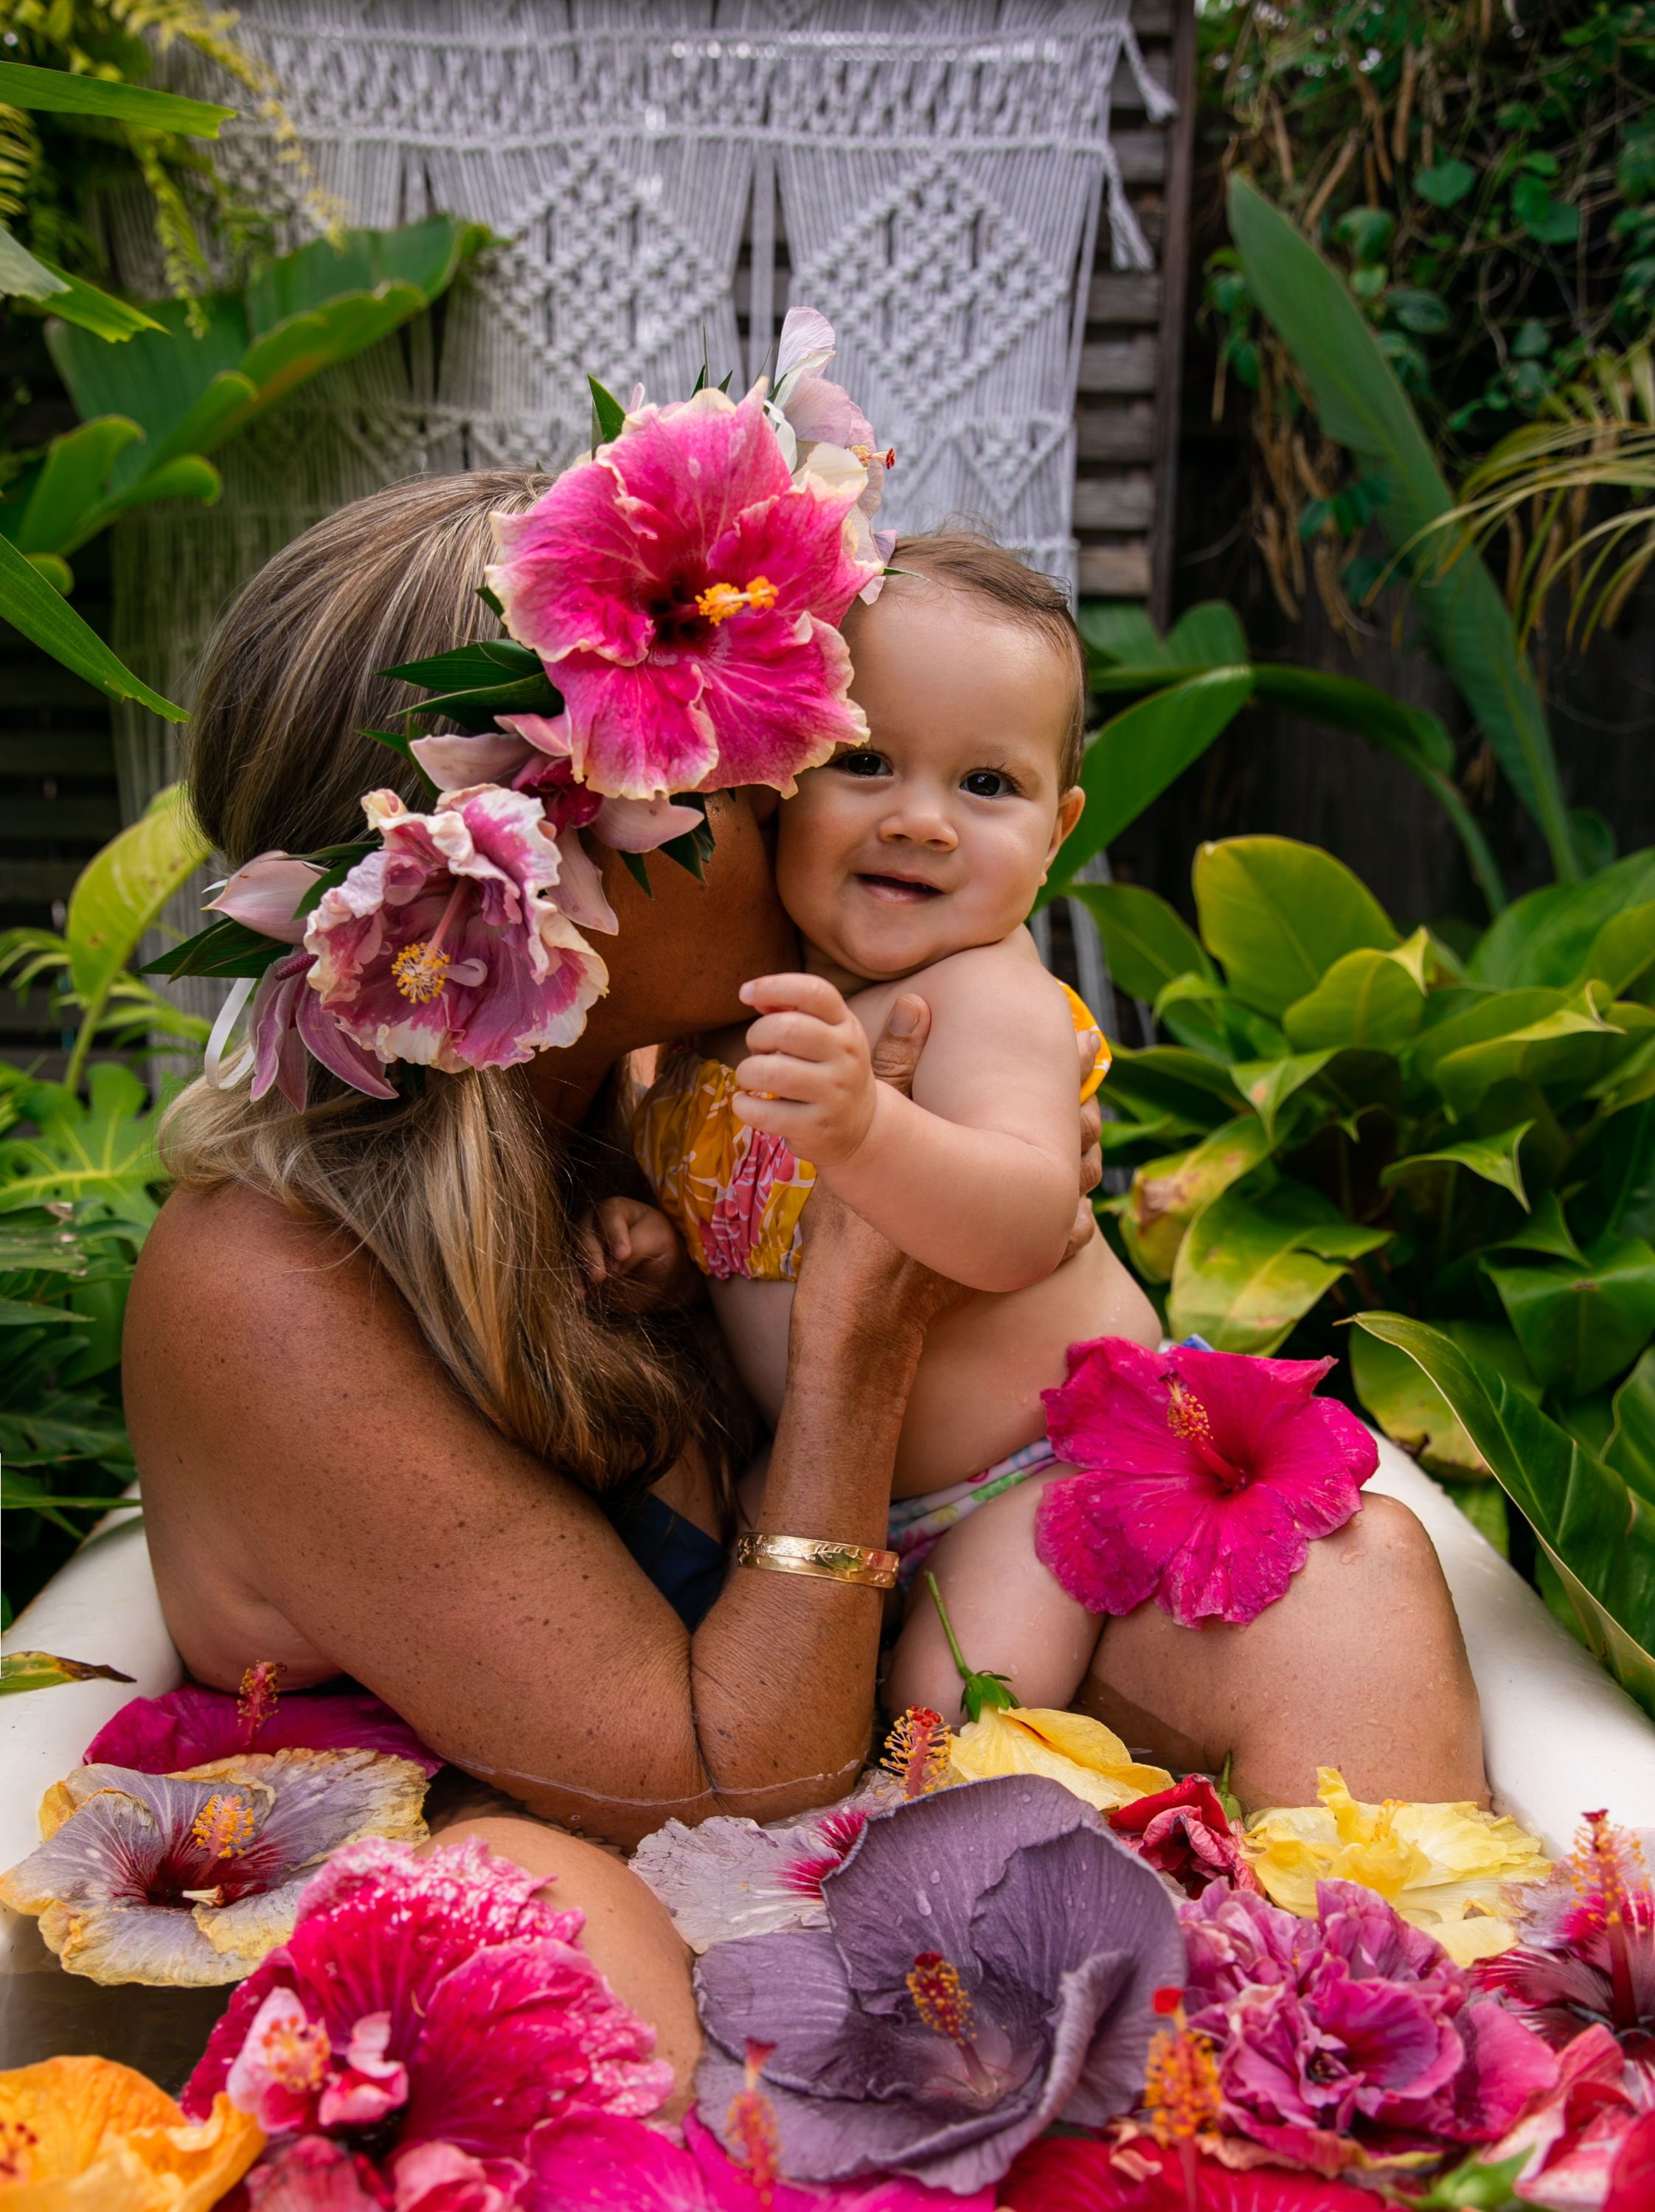 floral tub hibiscus tub flowers tropical flowers floral bath tropical bath hibiscus flowers mommy and me mommy and me milk bath mommy and me floral tub Storm Pierre Photography Hibiscus Love Tub #fallmilkbathbaby